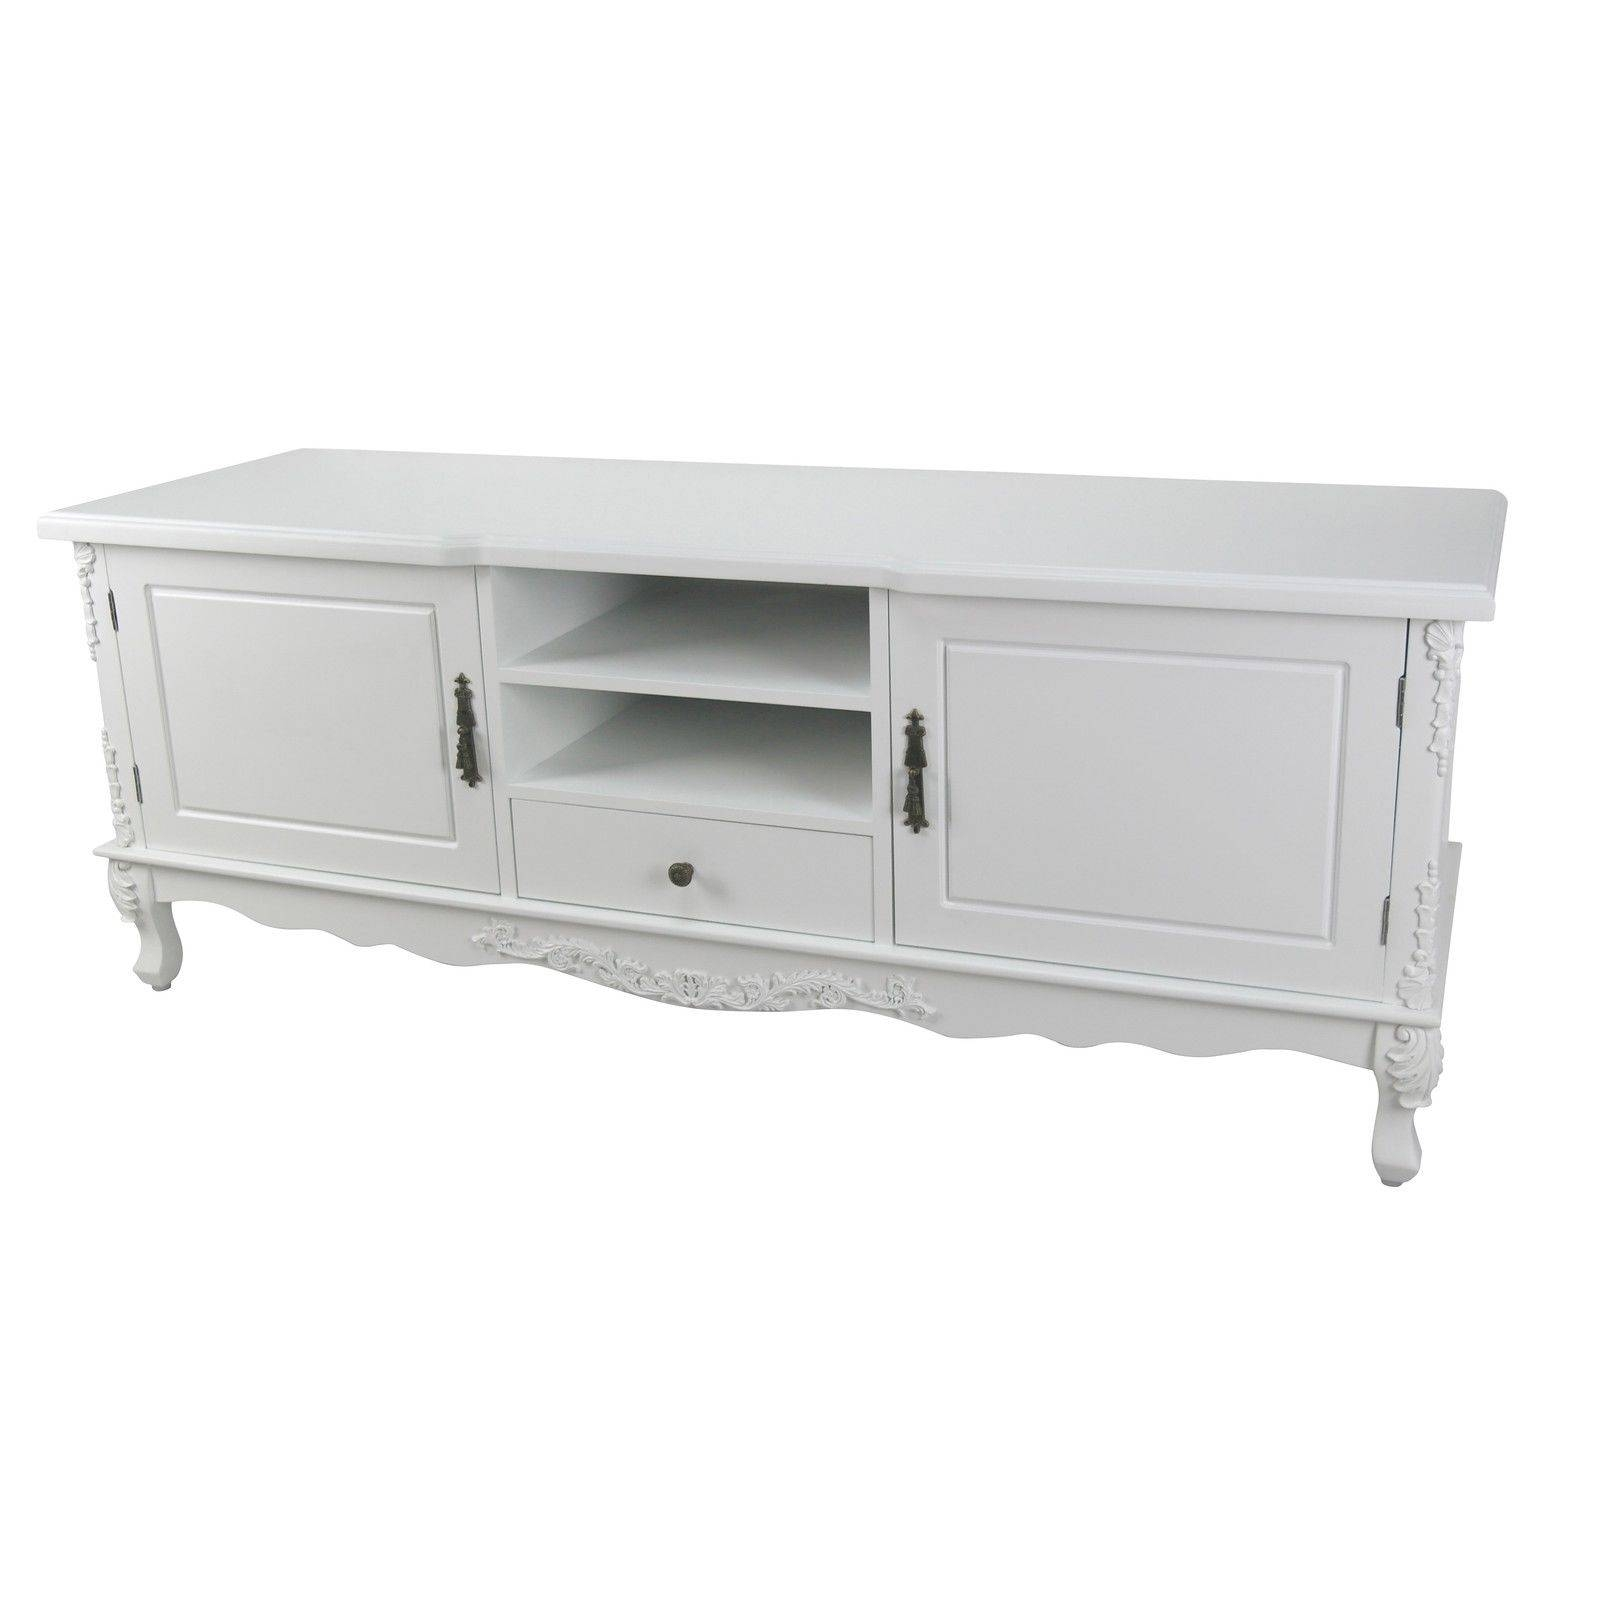 French Style White Large Cabinet Tv Unit Furniture – La Maison Throughout French Tv Cabinets (View 7 of 15)